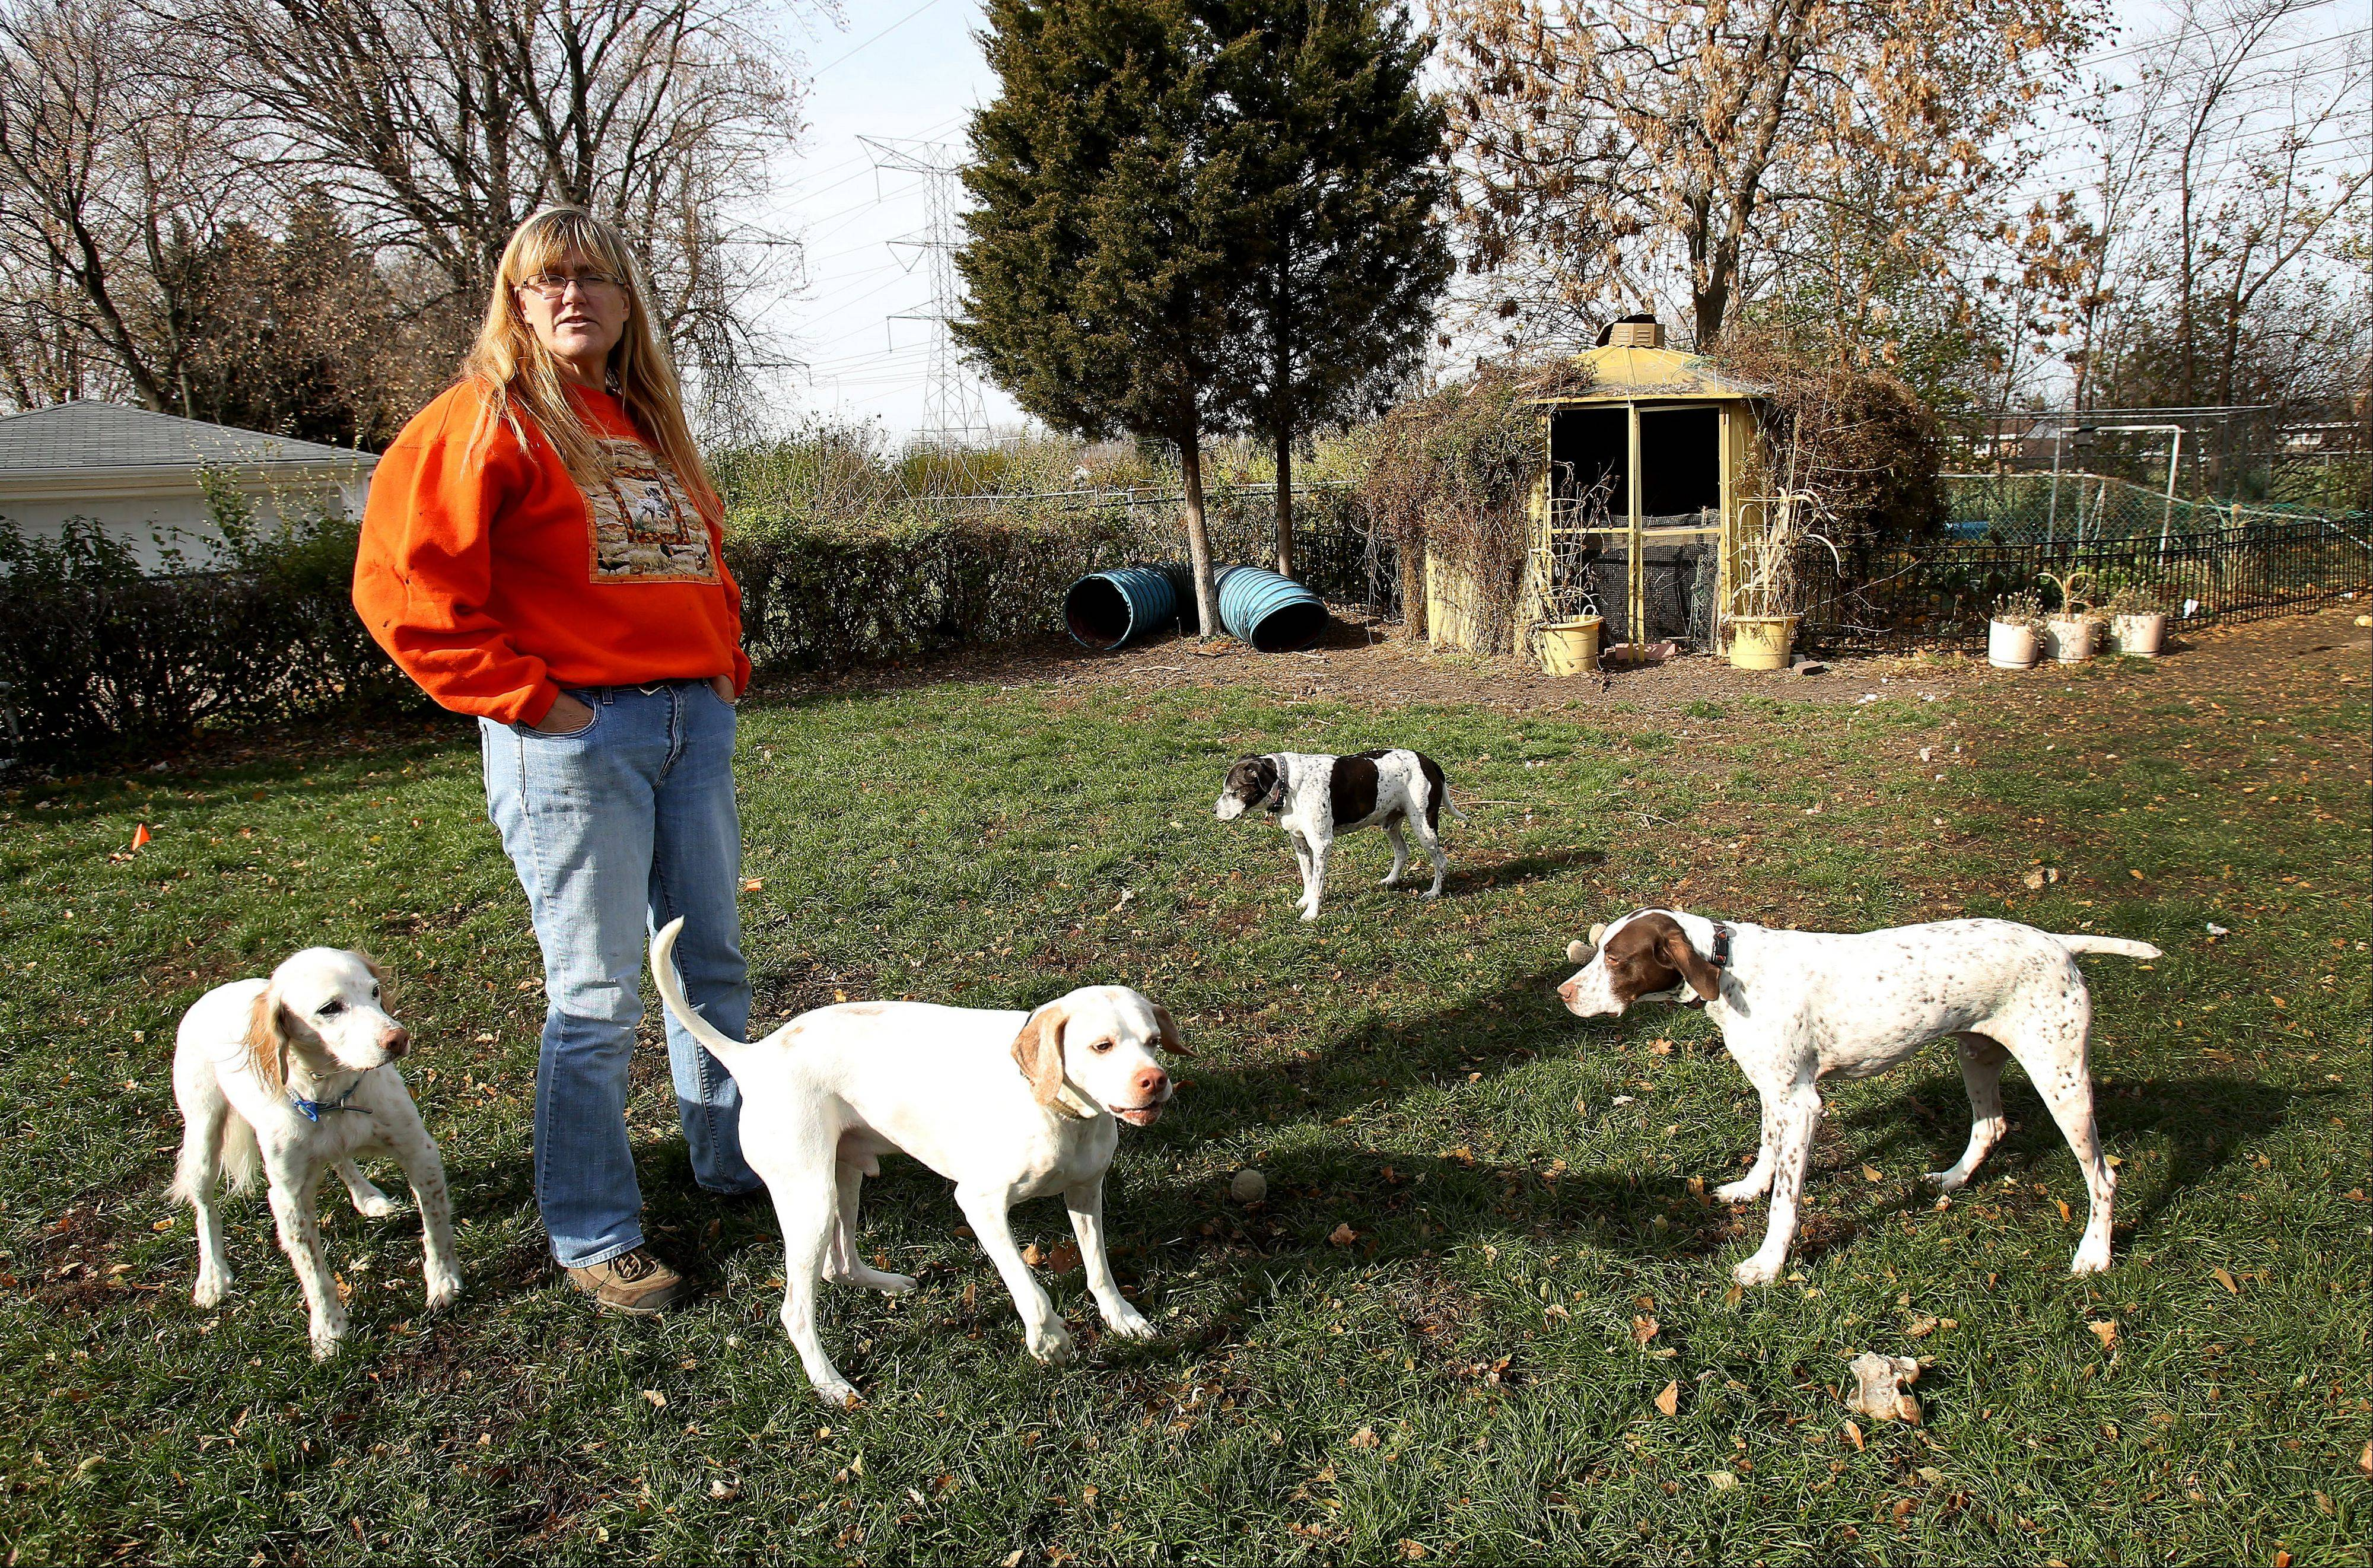 Lisa Spakowski, who started a dog rescue more than 12 years ago, could be fined up to $750 by the city of Wood Dale for having more dogs in her house than the city allows.